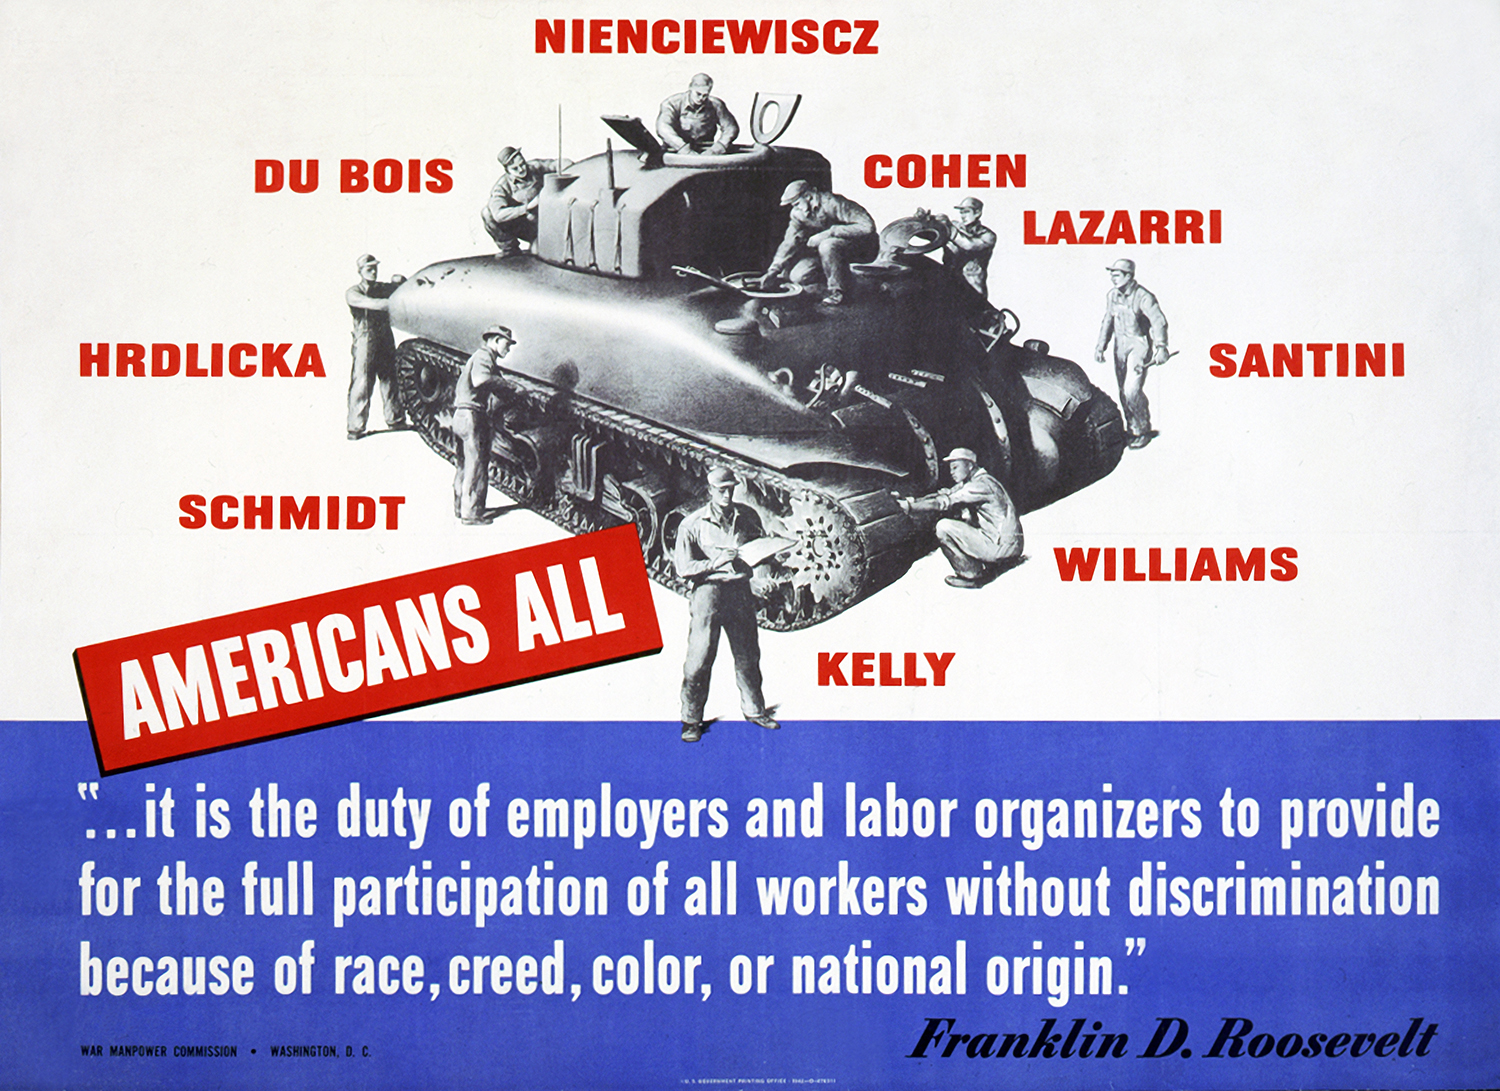 A propaganda poster from World War II shows Americans of different national origins assembling a Sherman tank with a quotation against discrimination by President Franklin D. Roosevelt.